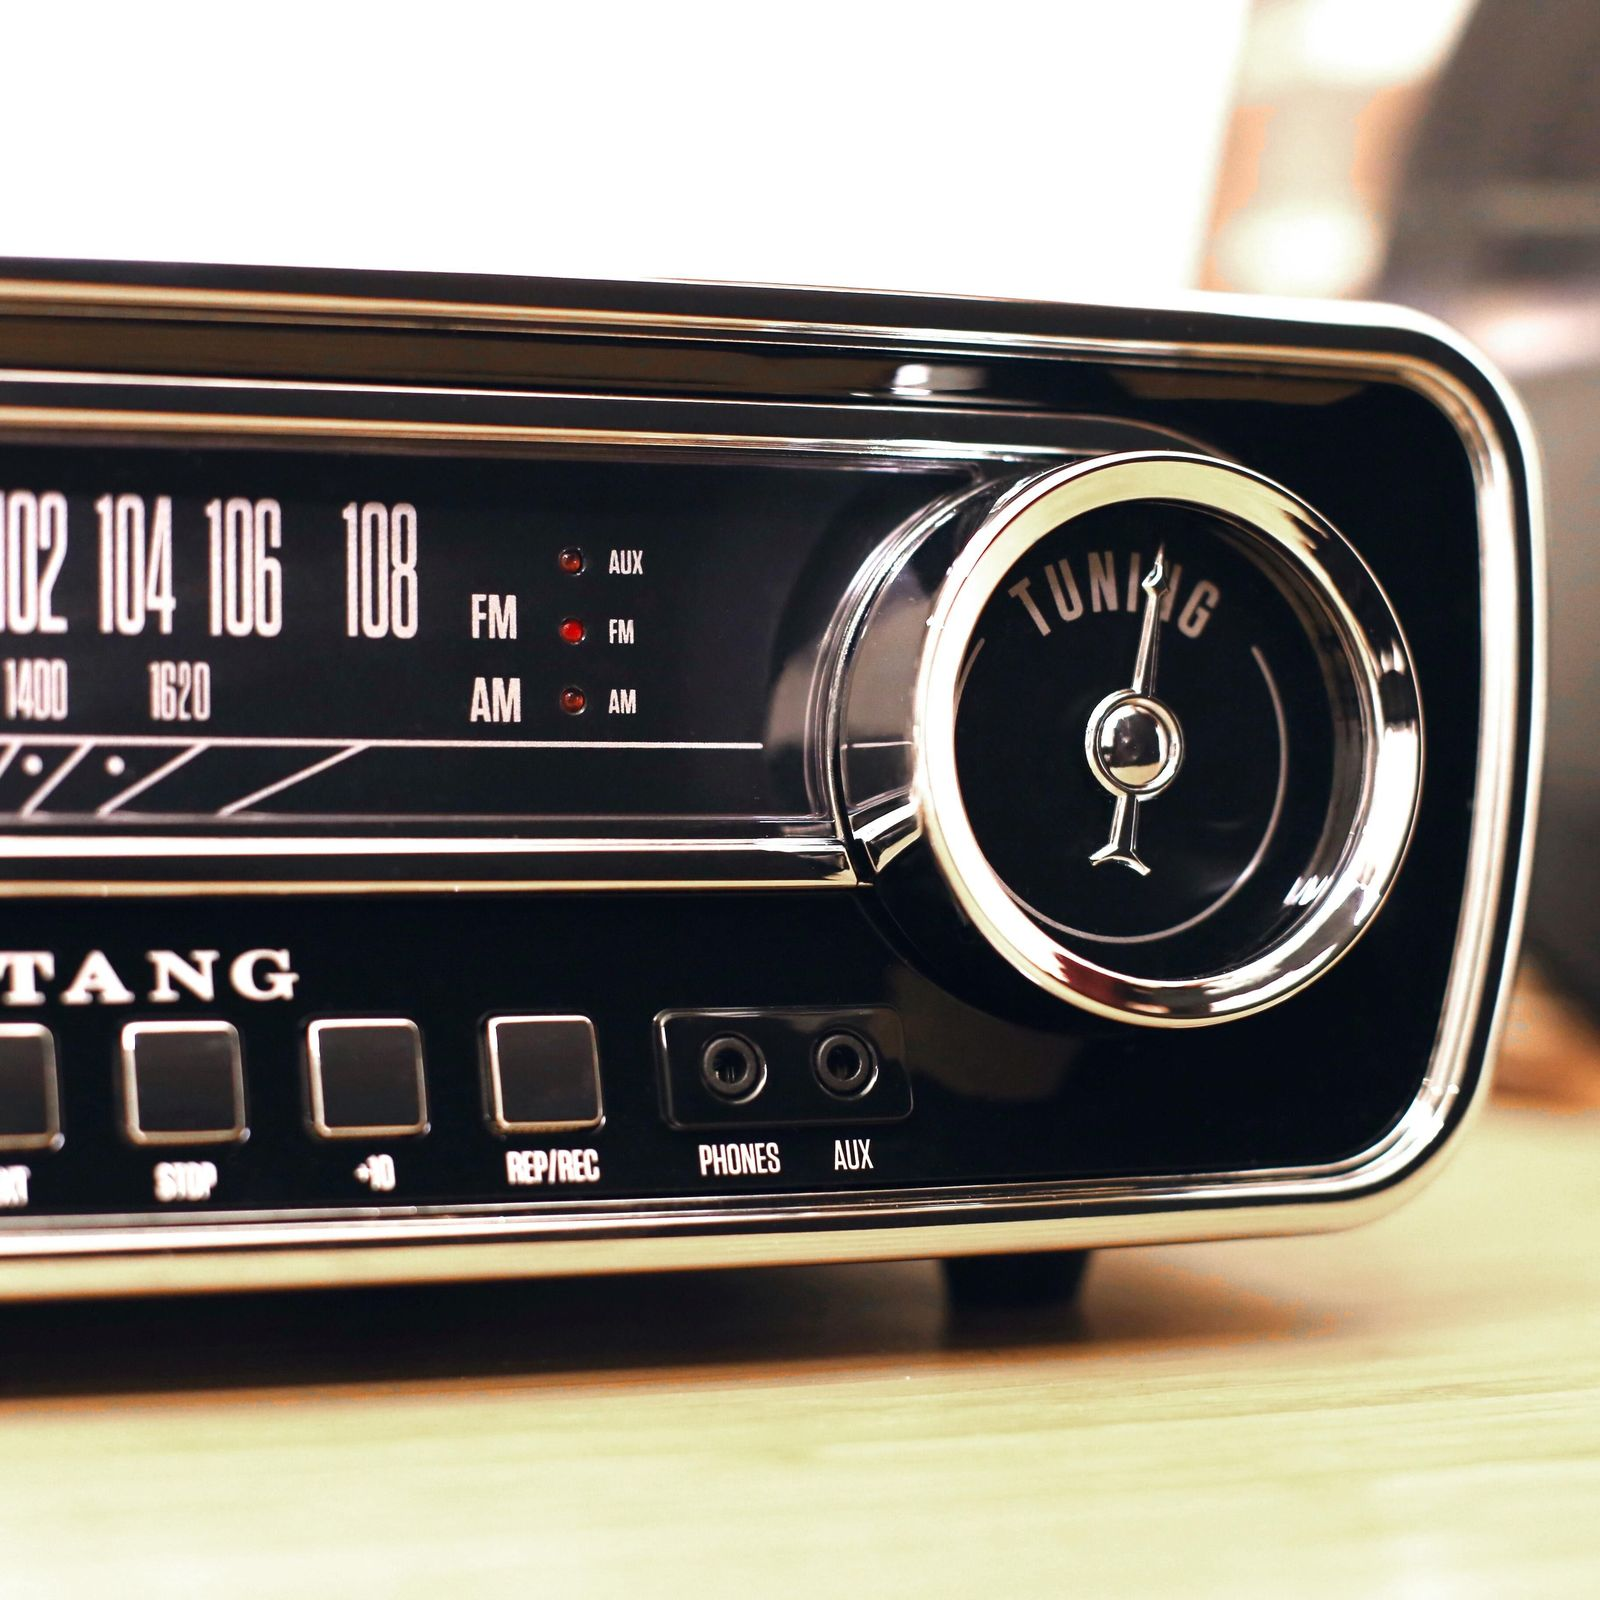 ION Mustang LP 4-in-1 Classic Car-Styled Music Center (Black) image